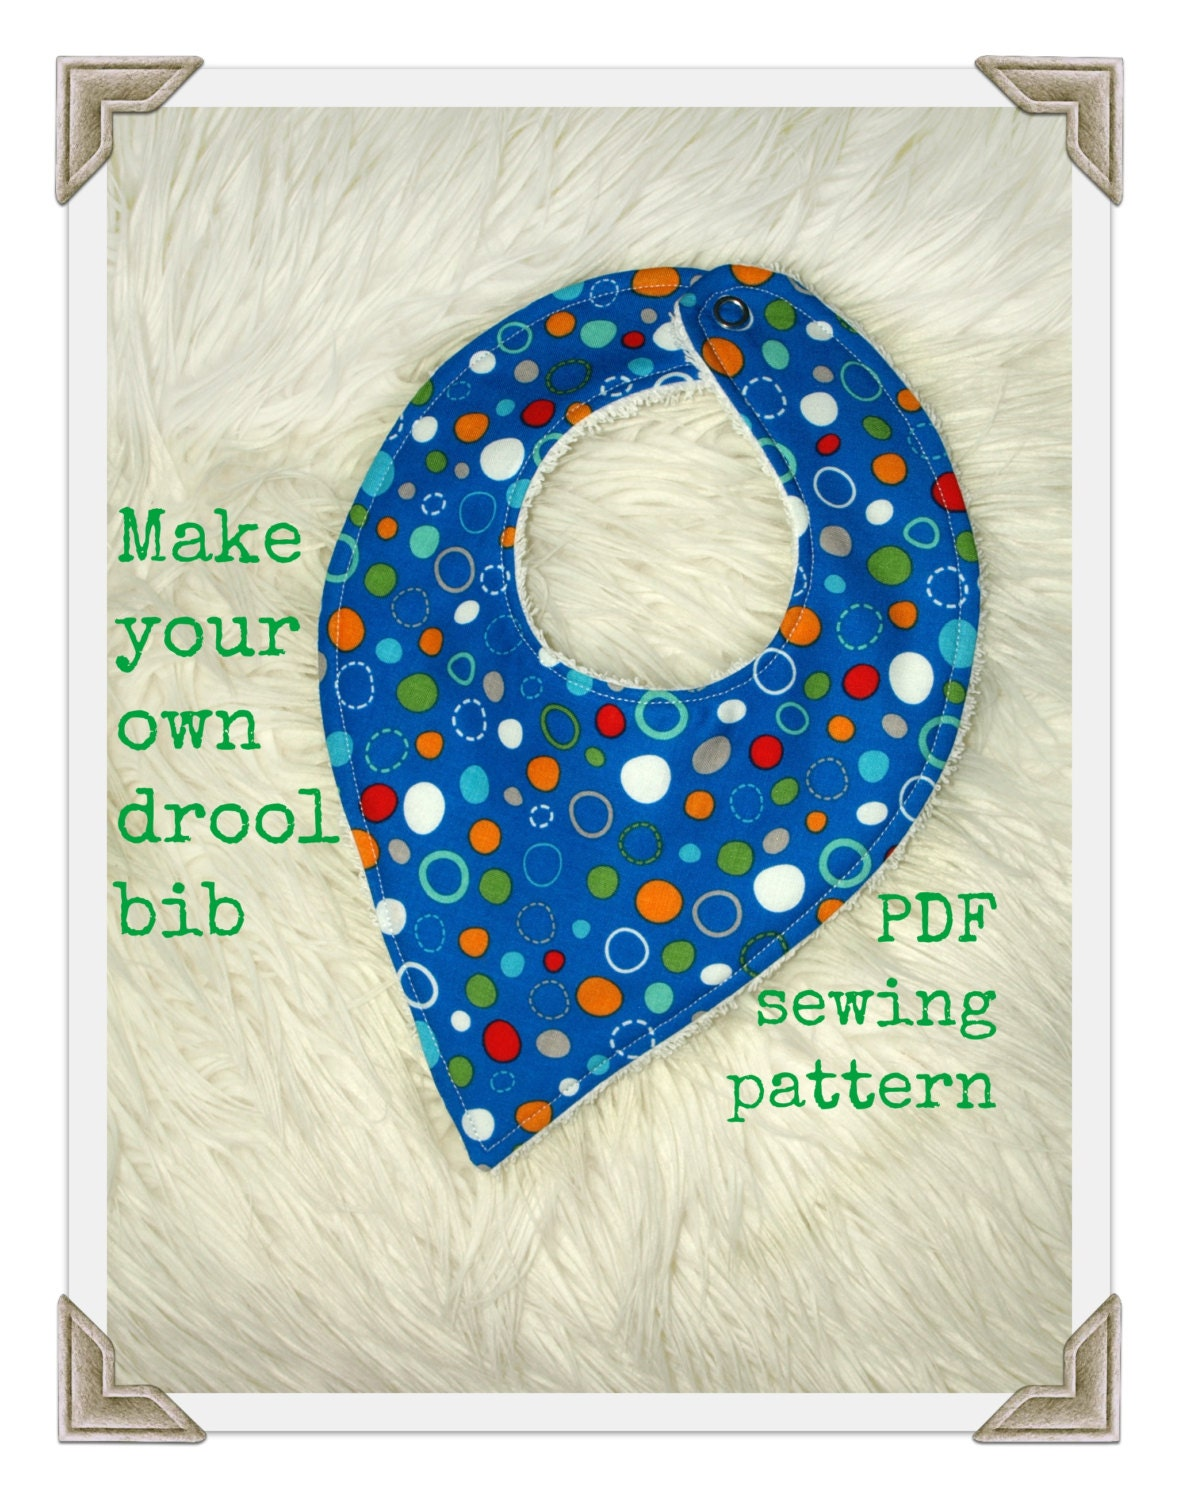 Bandana bib pattern tutorial s125 baby bib pattern drool bib this is a digital file baditri Images